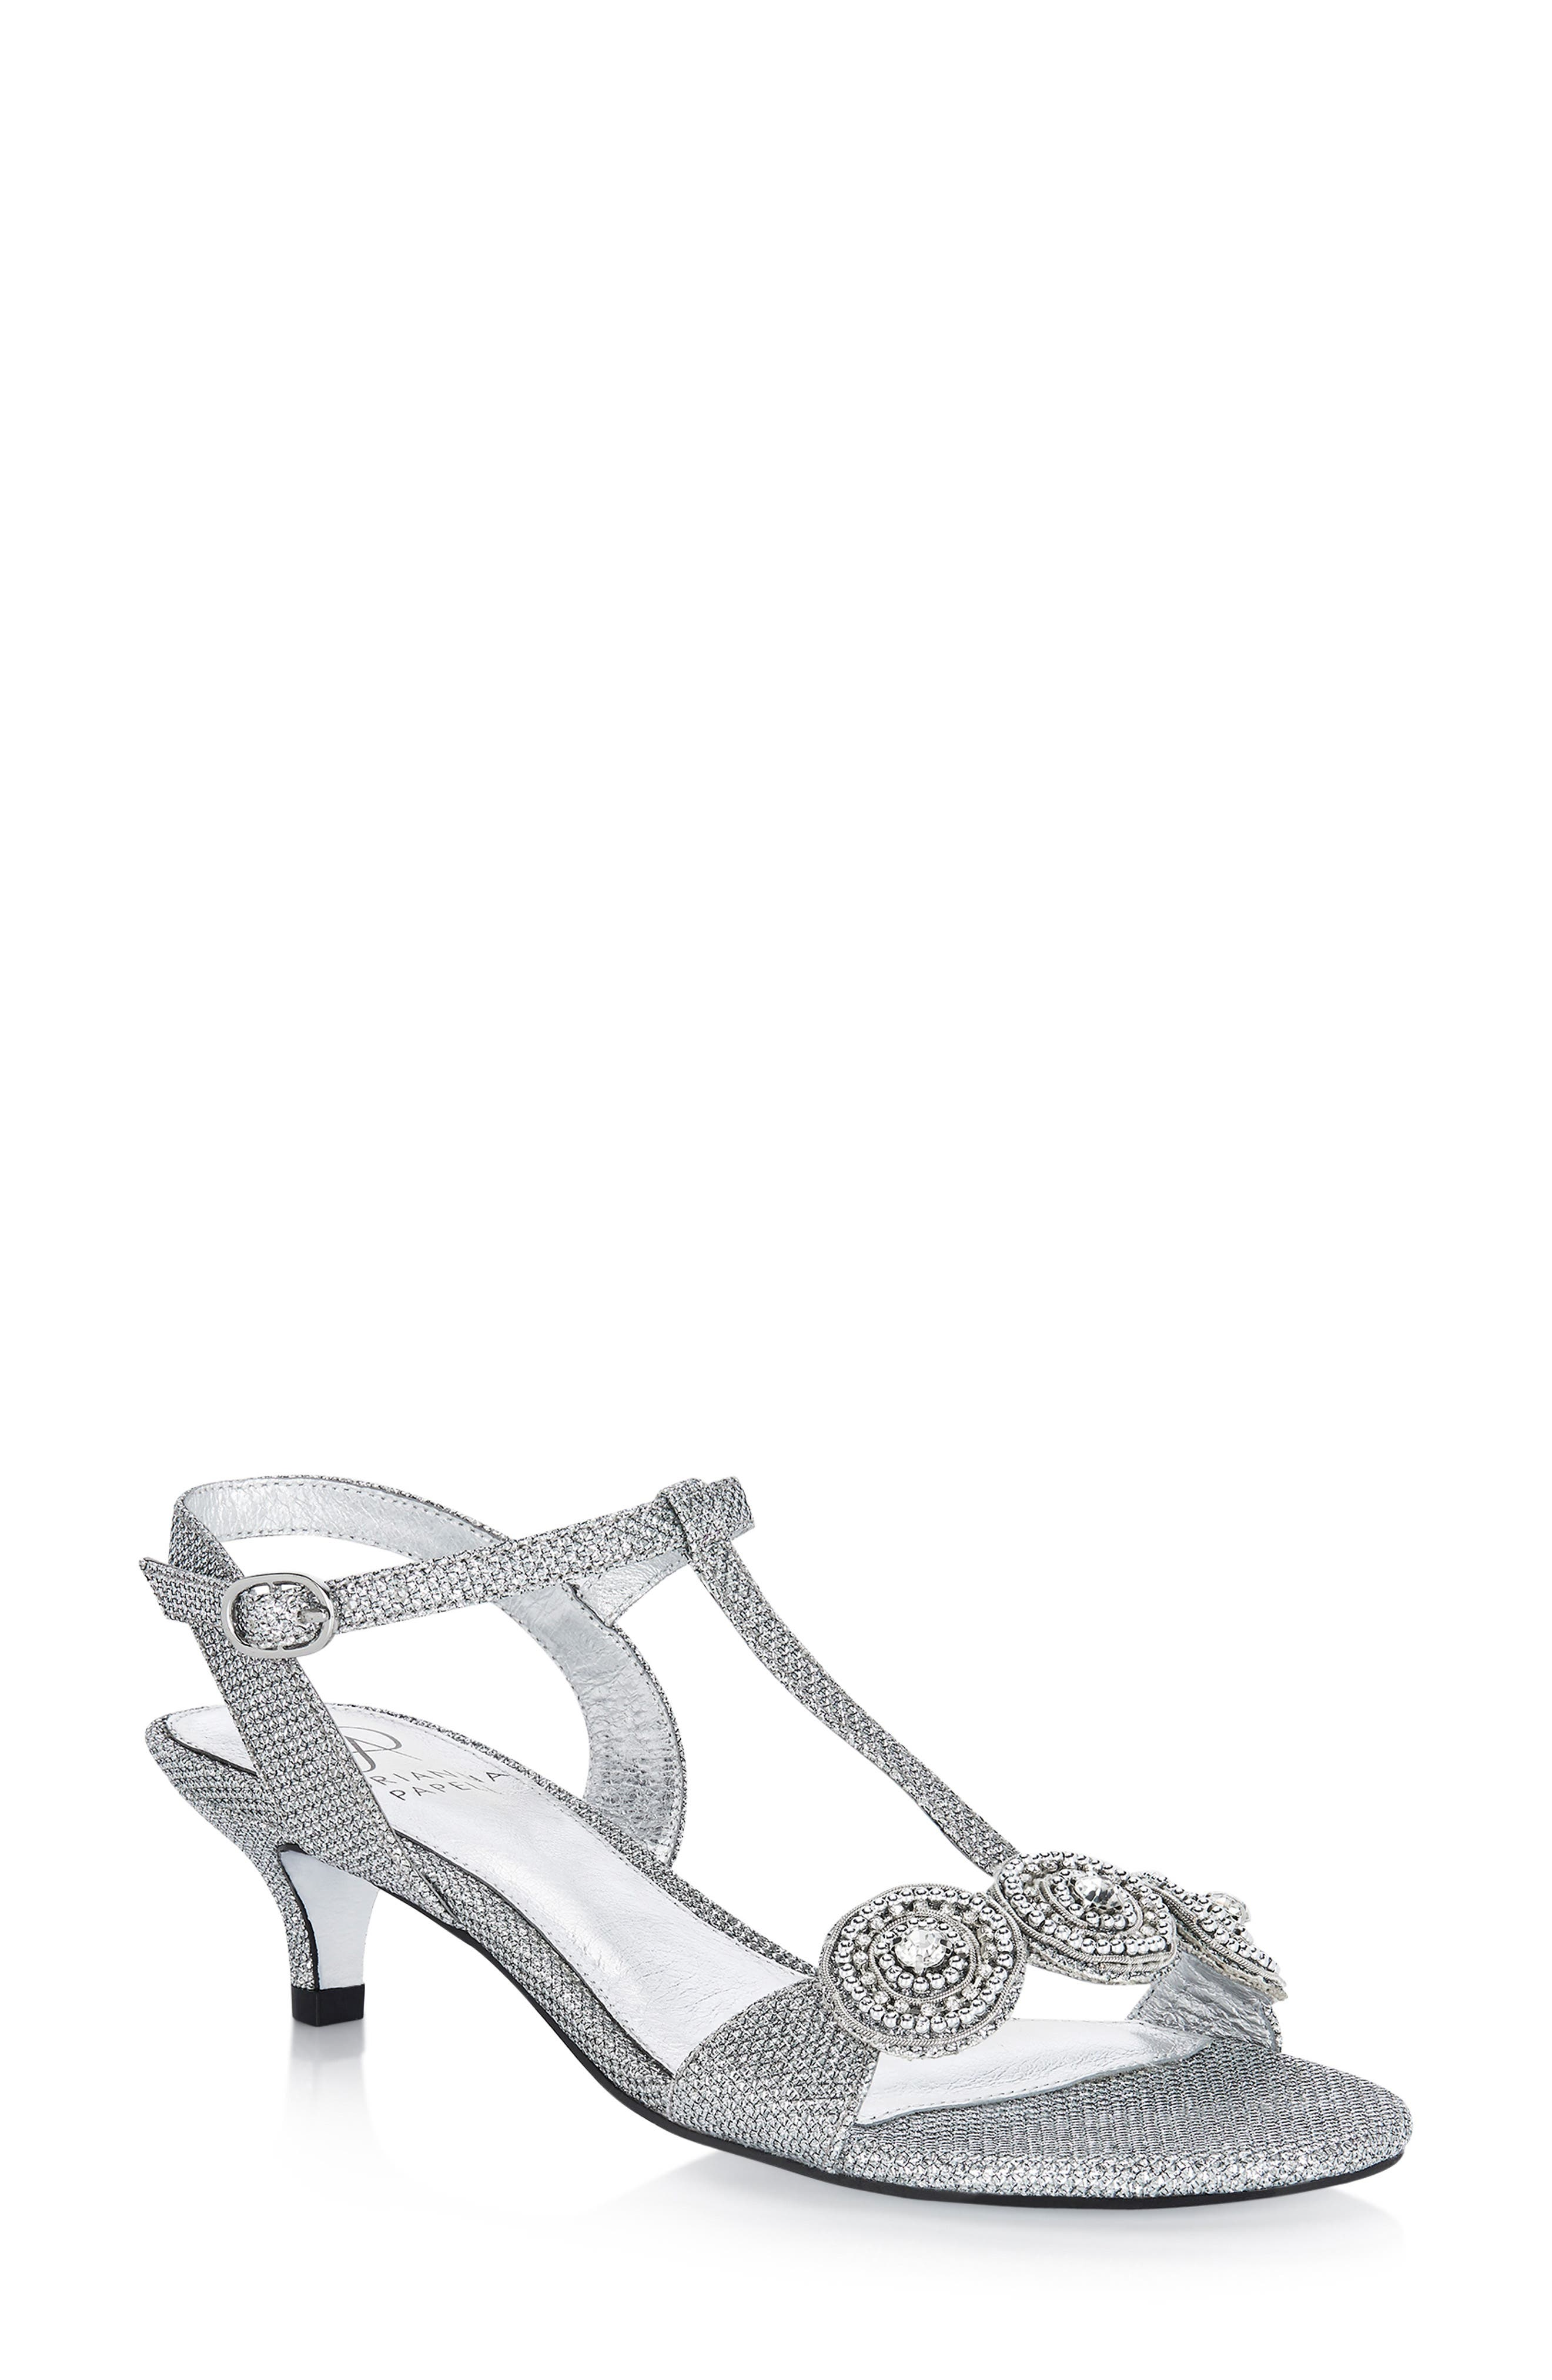 Adrianna Papell Sandals TACY ANKLE STRAP SANDAL